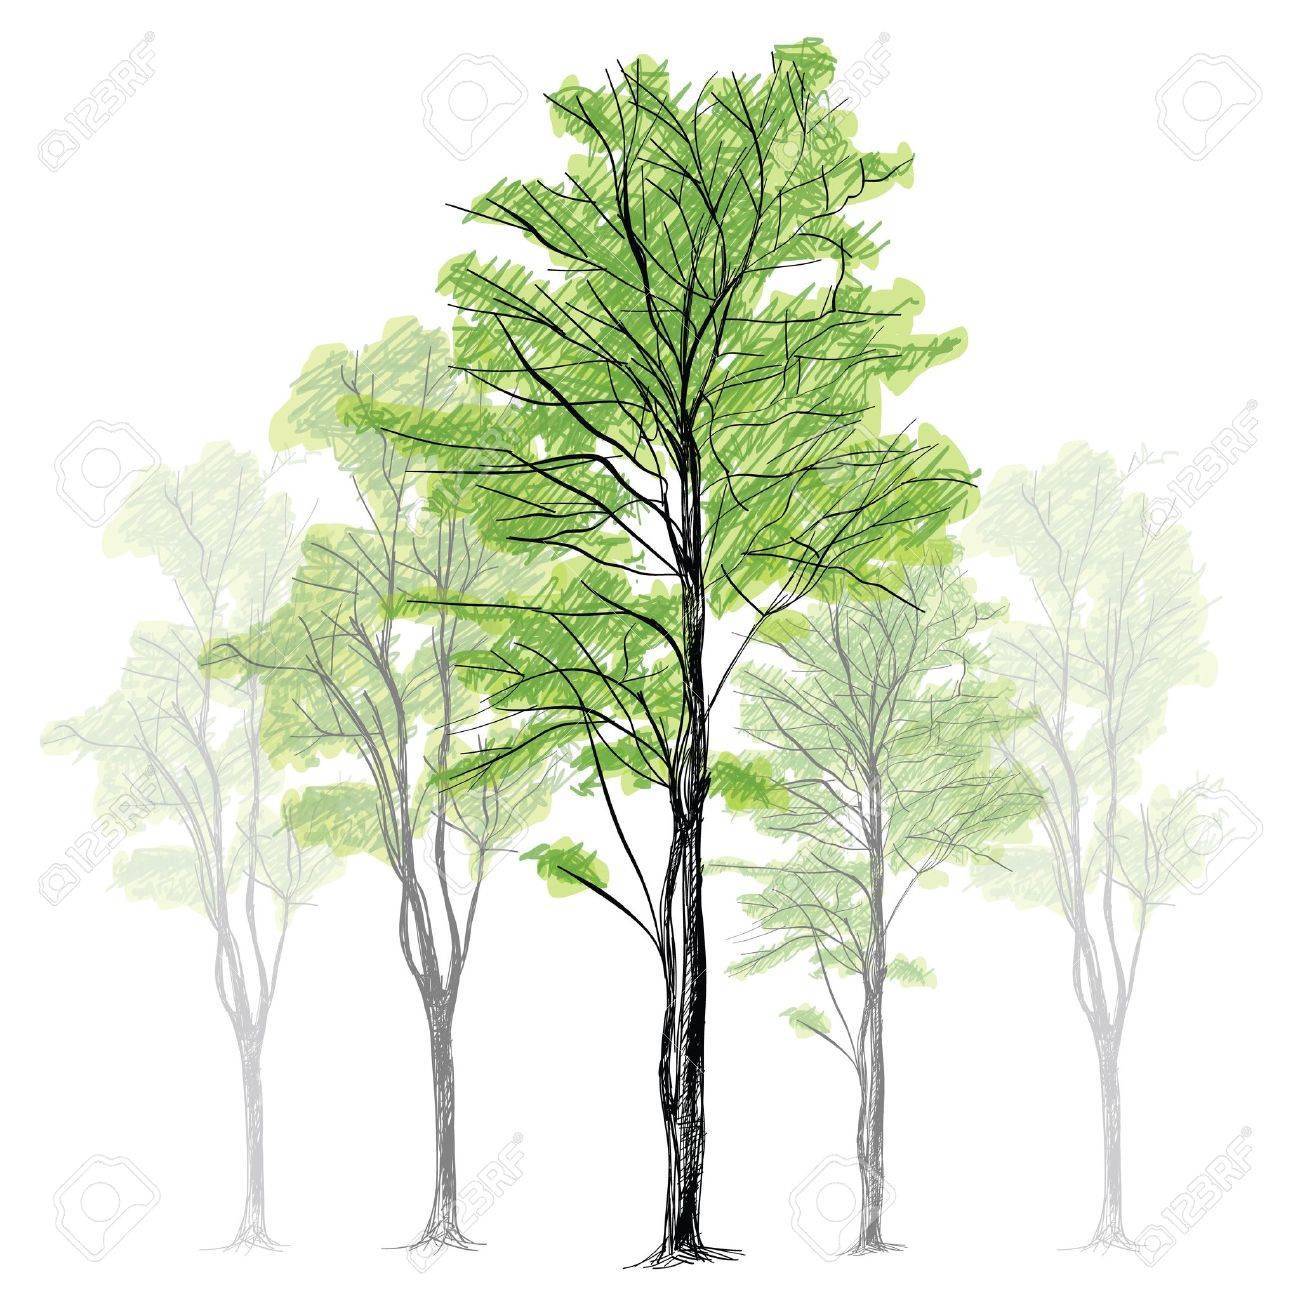 Tree - Hand Drawn Stock Vector - 17995746